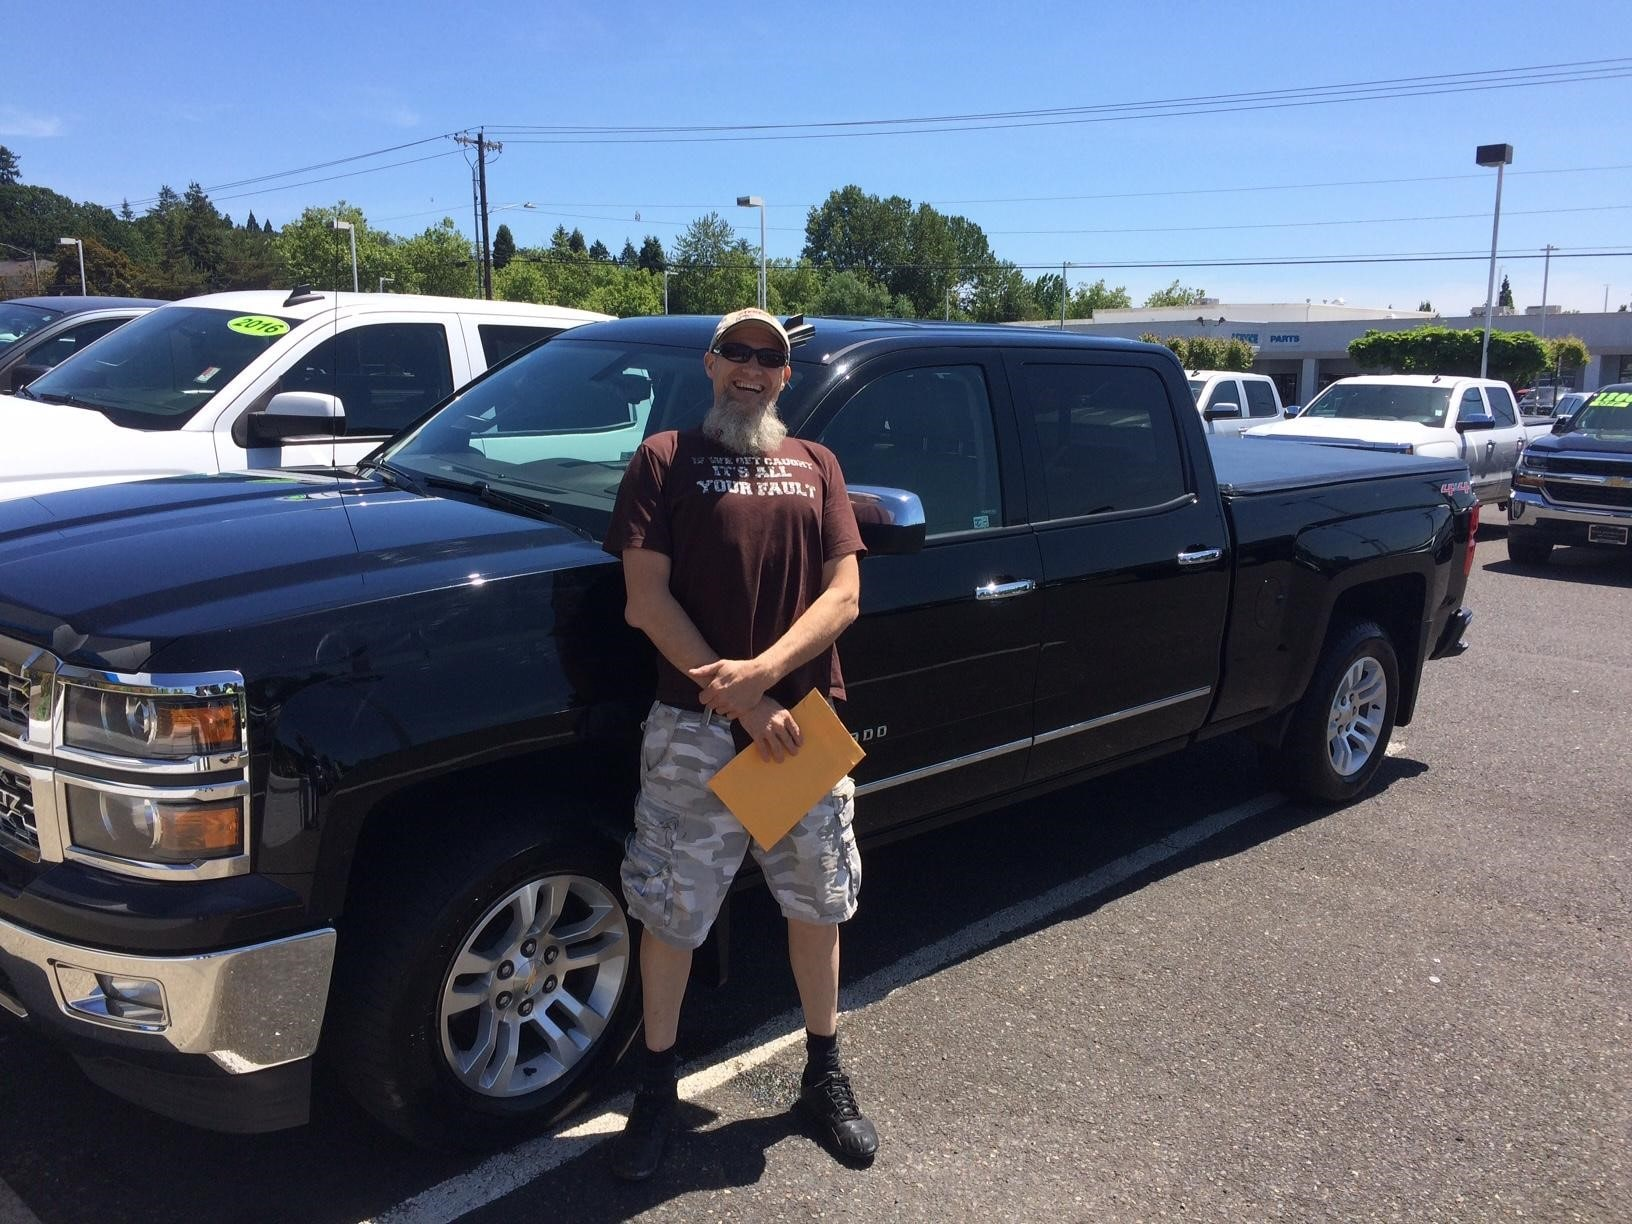 A Happy Silverado Truck Buyer with an approved Auto Loan from Mcloughlin Chevrolet in Portland Oregon